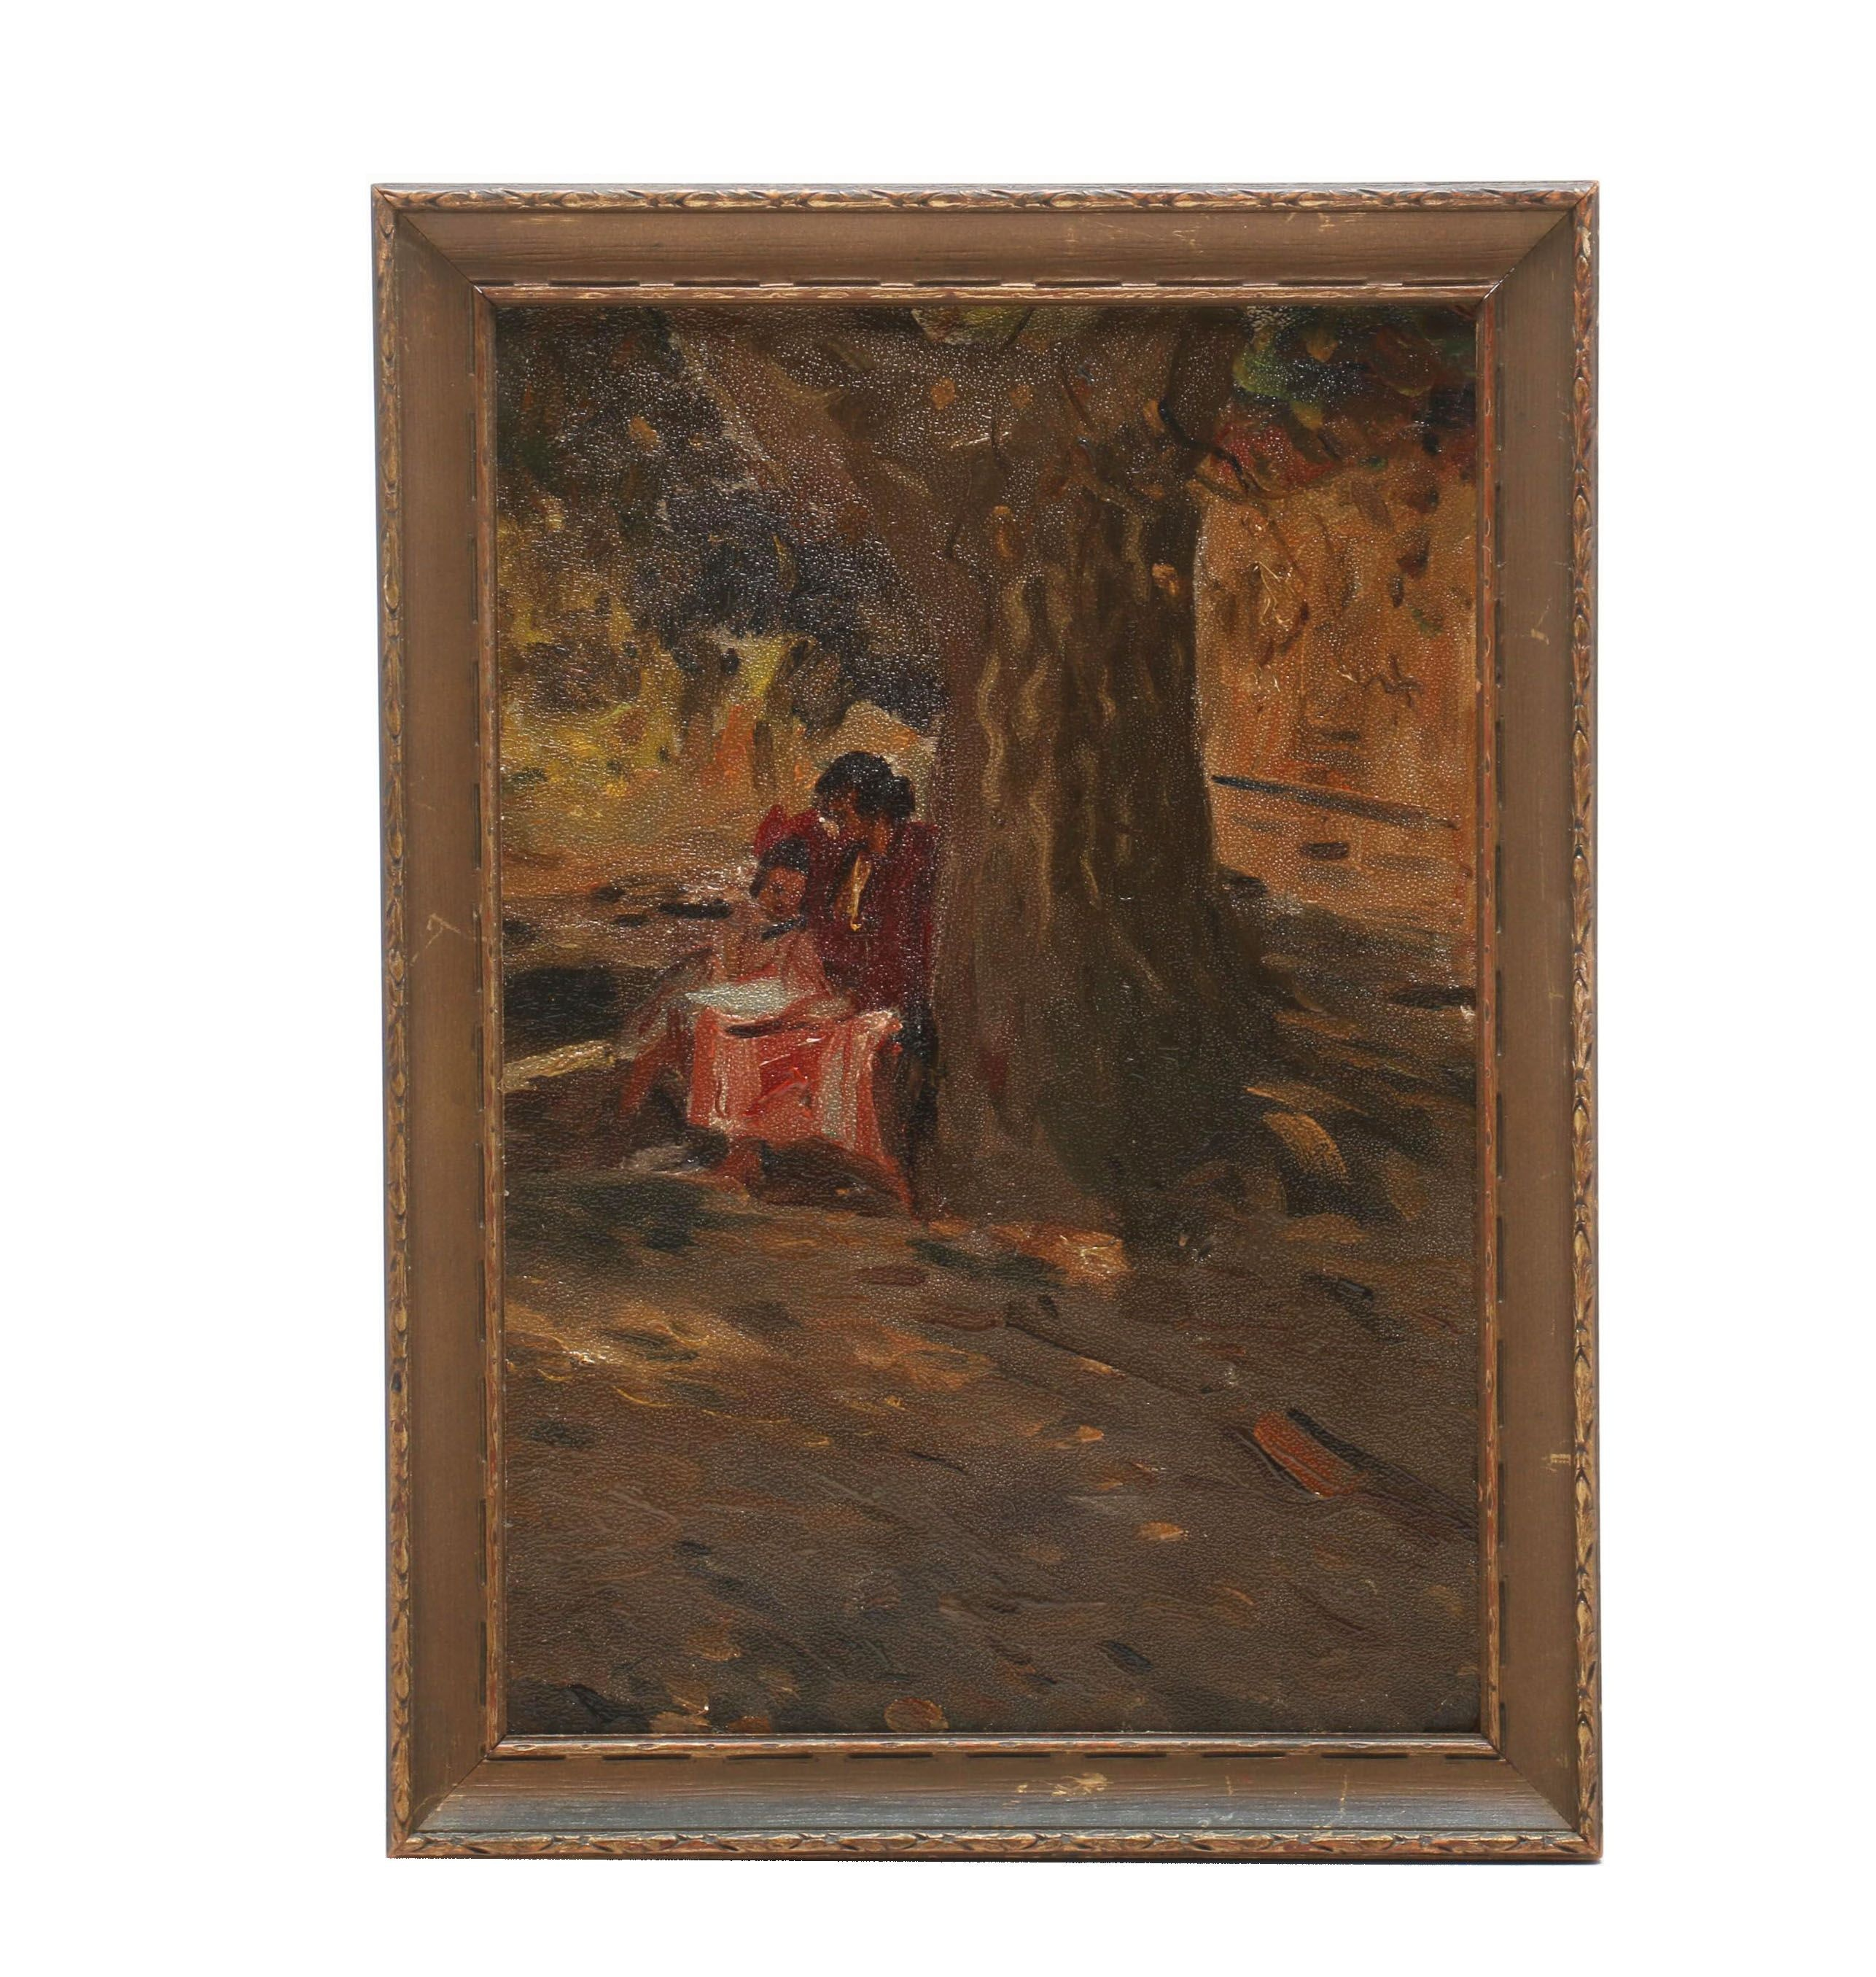 Turn-of-the-Century Oil Painting on Academy Board